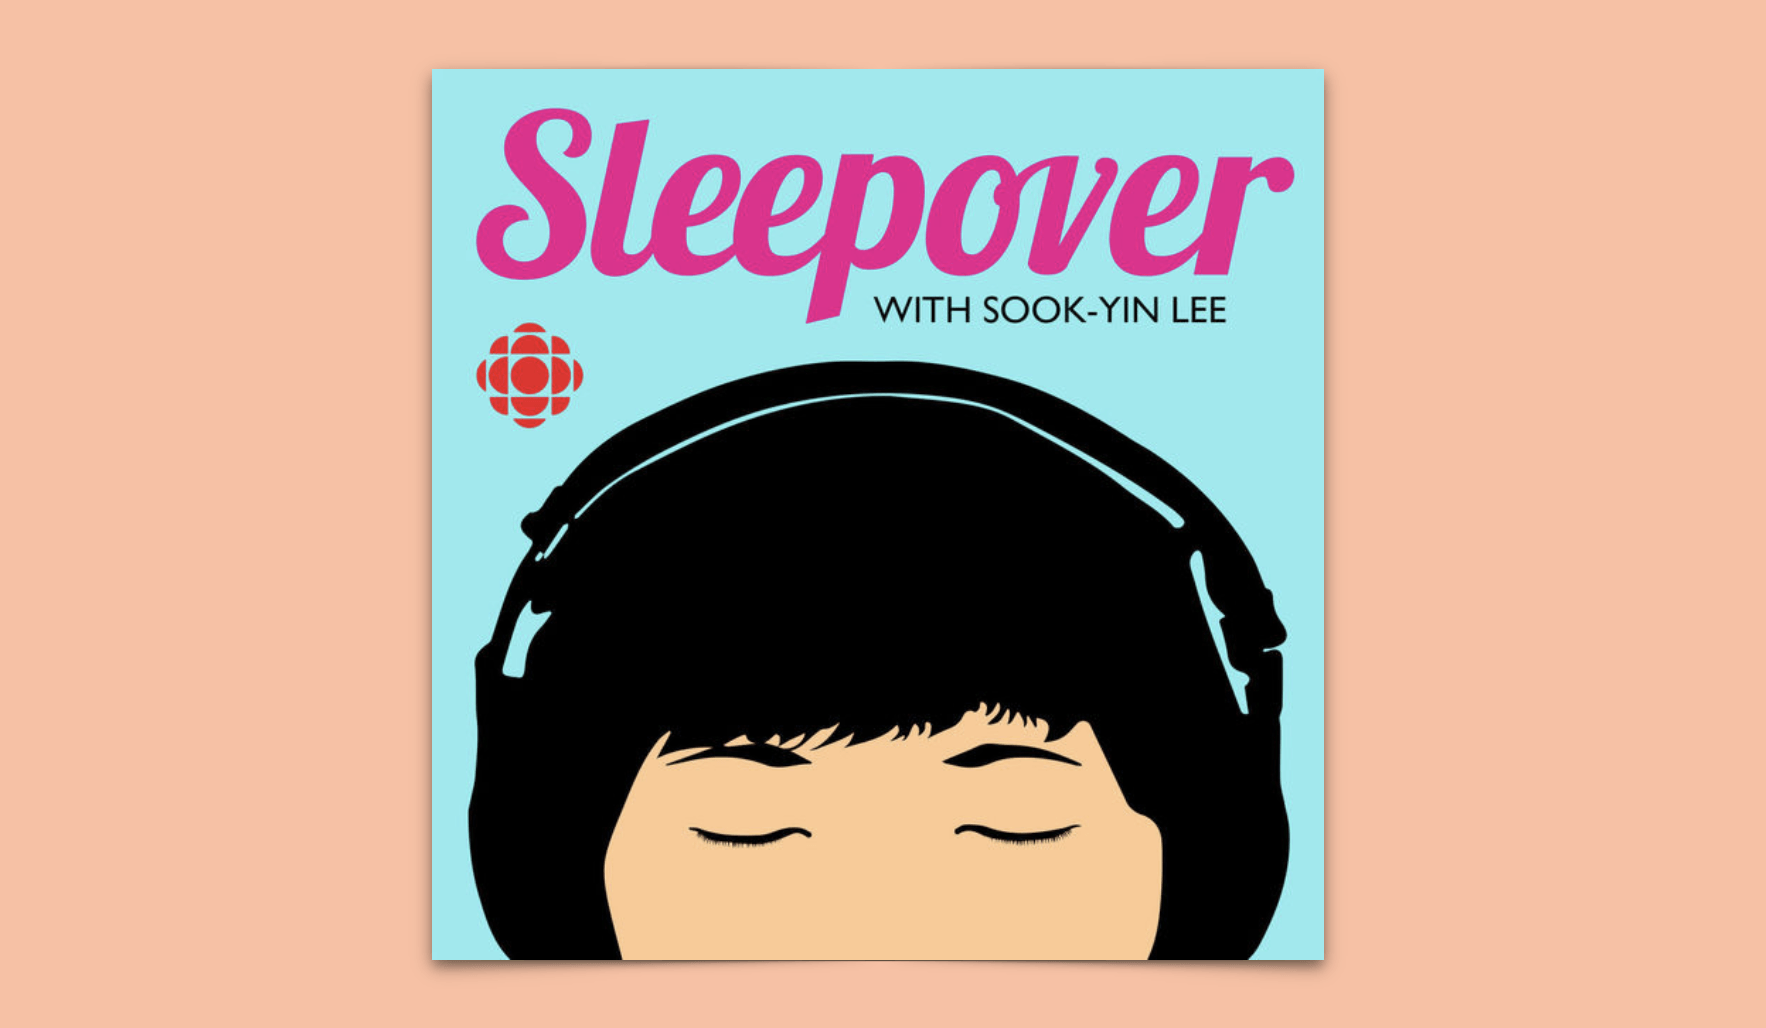 Sleepover Podcast Review